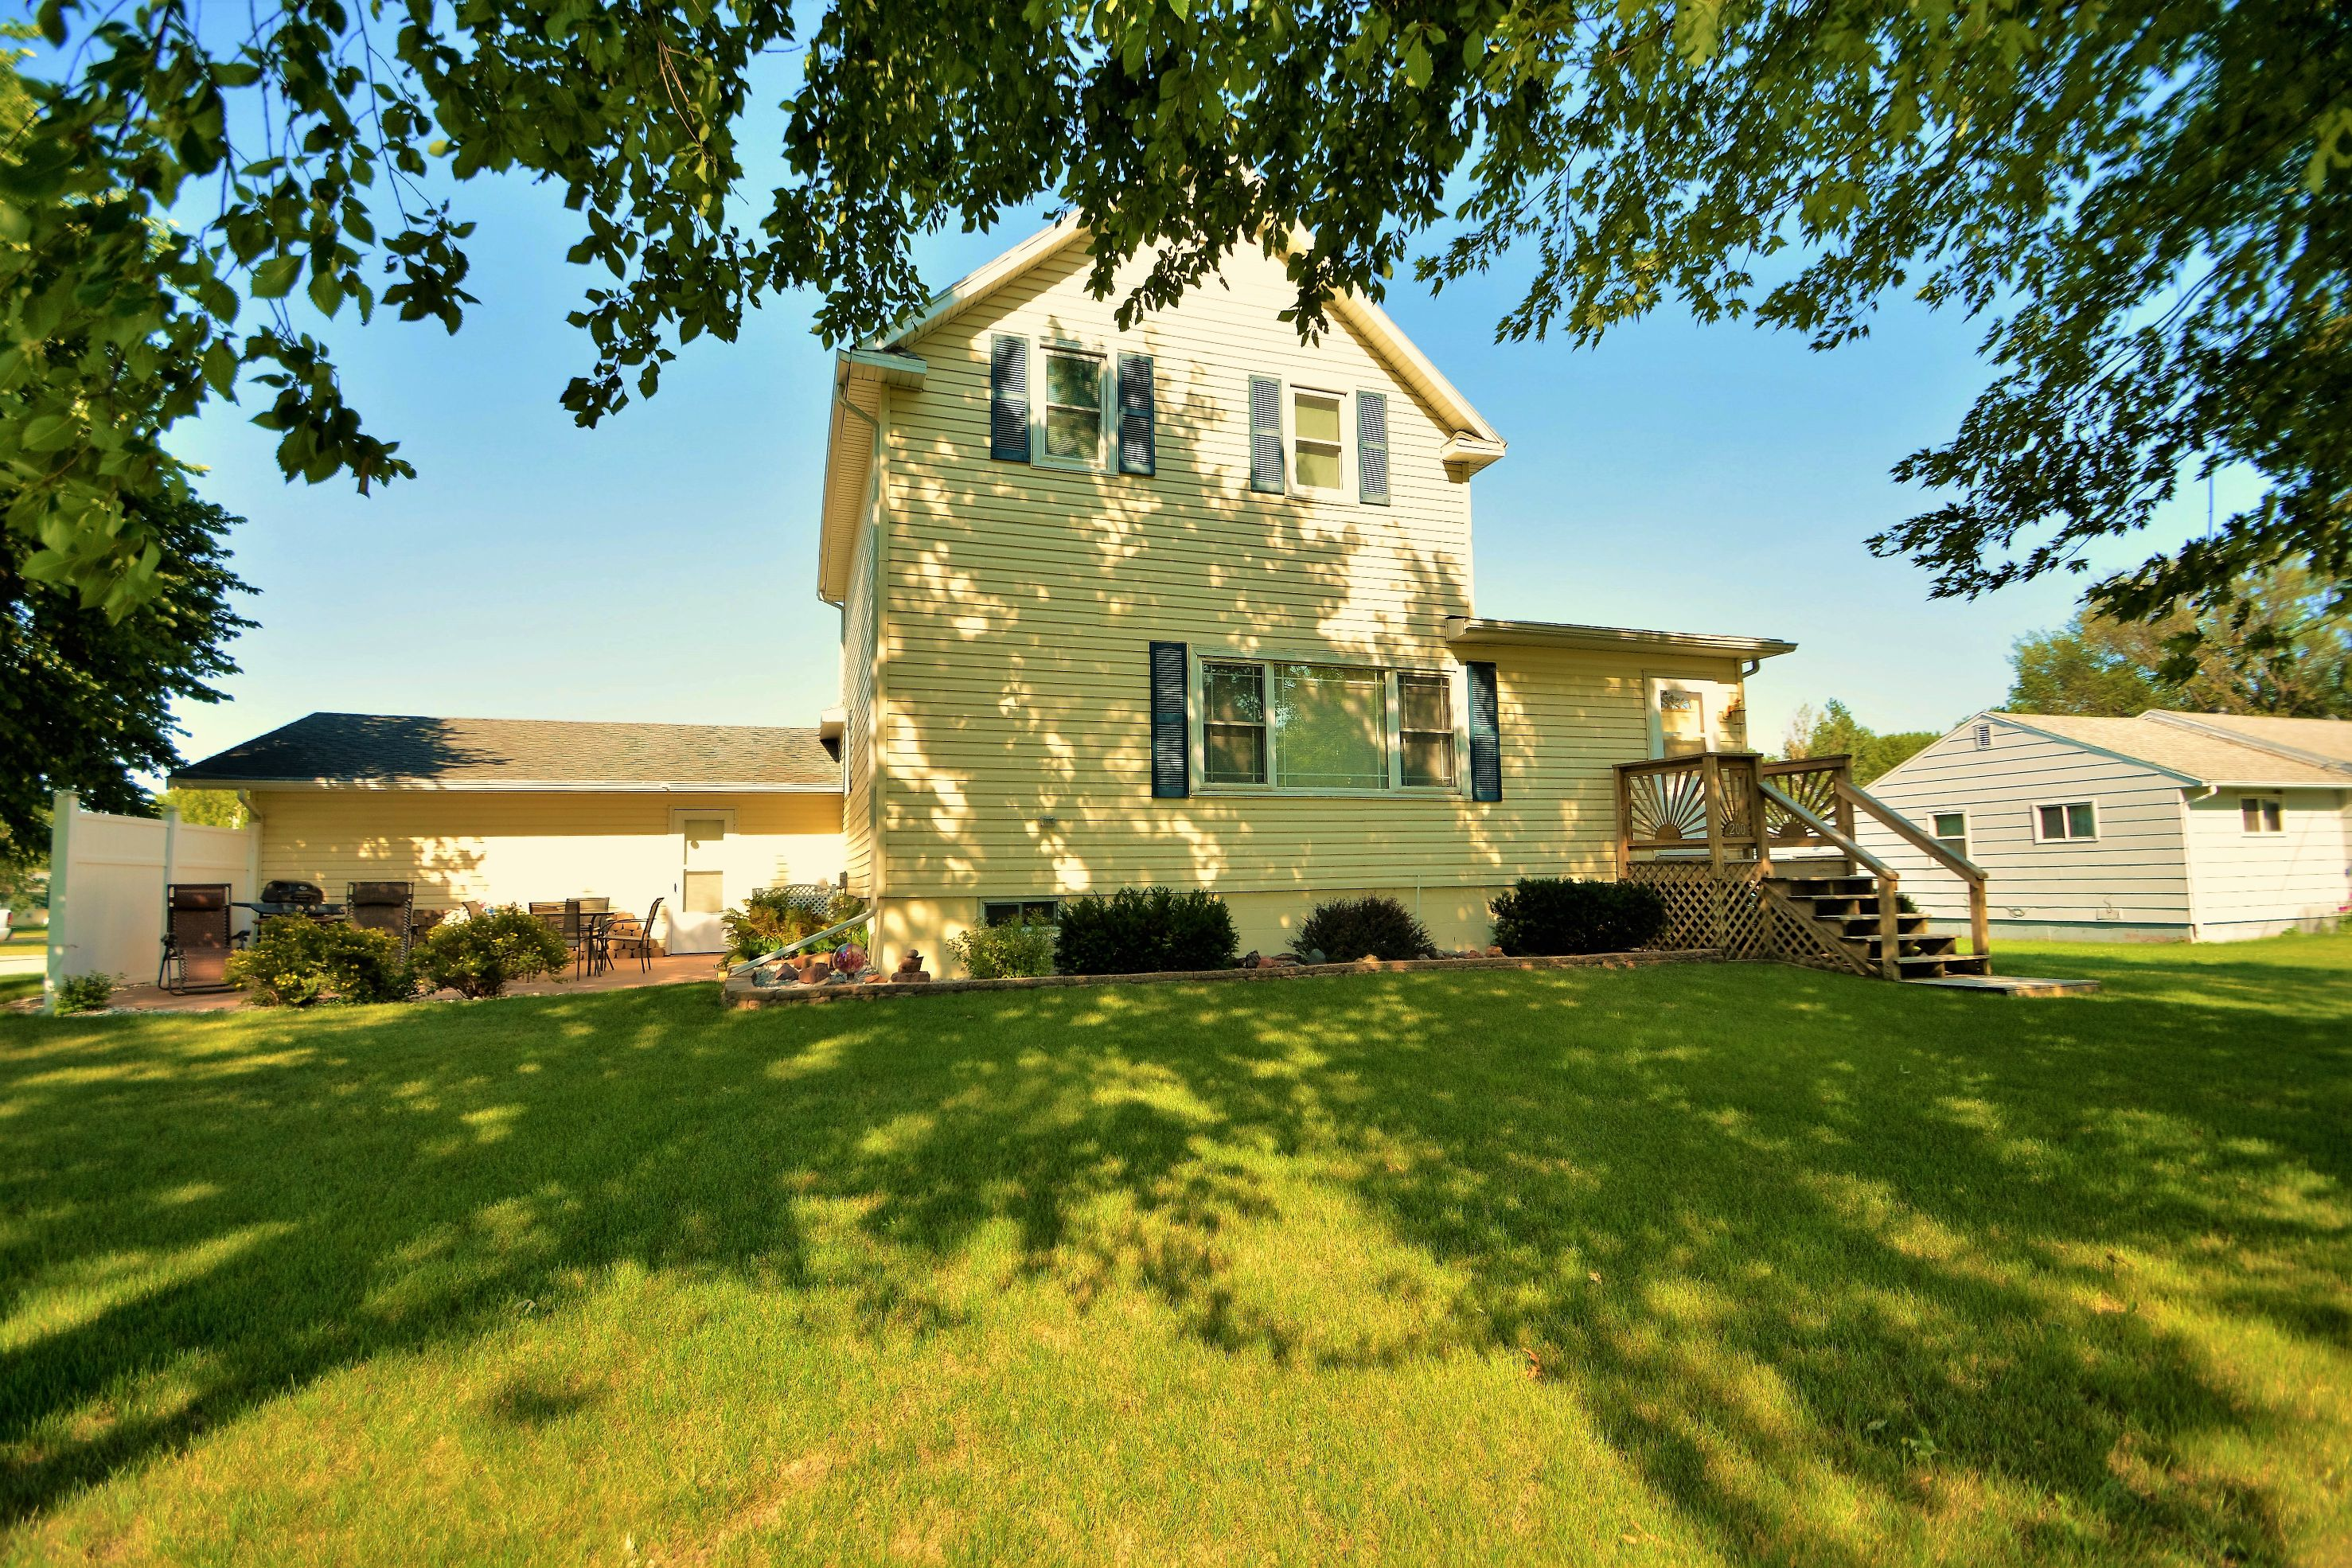 Home Of The Week Comfy Well Kept Home In Colfax Fargo Moorhead Real Estate Fm Team